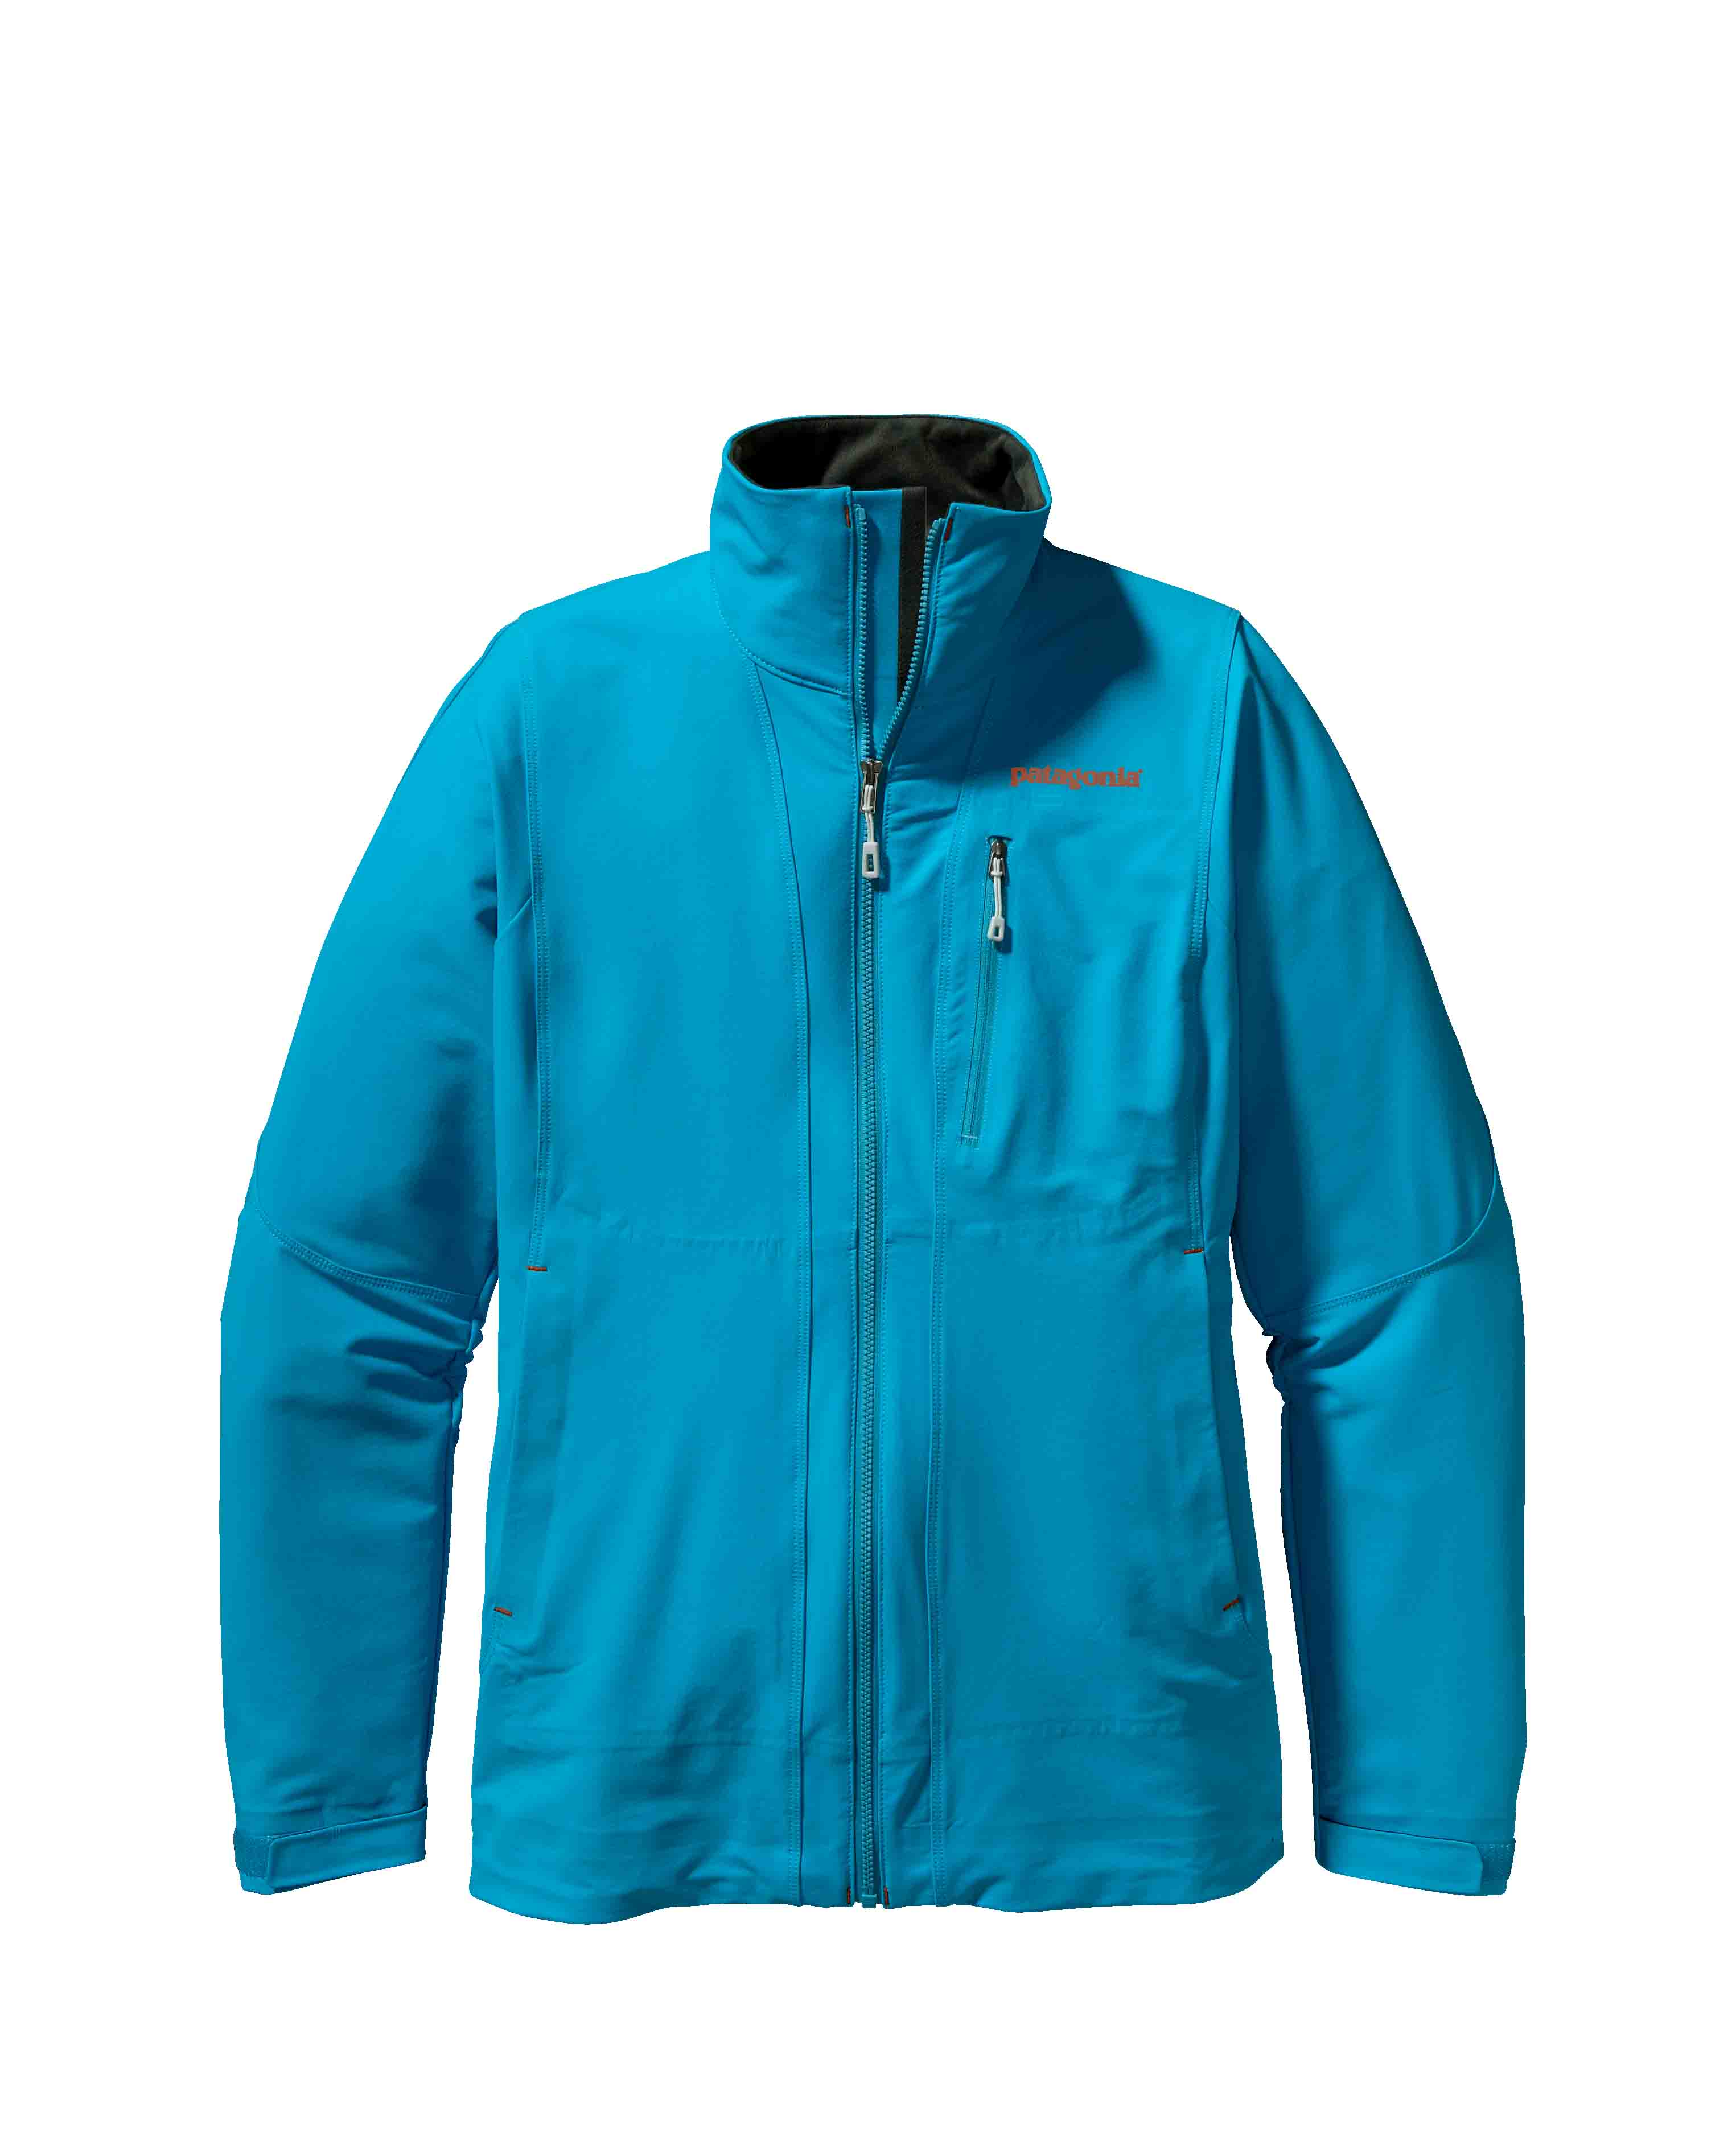 Patagonia women's Alpine Guide Jacket - The Alpine Guide Jacket and Pants are highly durable, breathable soft shells made of a new wind-resistant Polartecr Power Shieldr Stretch Woven fabric to both protect and vent on extended, demanding climbs or ski tours. Polartecr Power Shieldr Stretch Wovens are enhanced with Polartecr Hardfacer technology to dramatically increase abrasion and snag/pick resistance, improve lasting durable water repellency, reduce moisture gain in wet conditions and accelerate dry-times. Polartecr Power Shieldr Stretch Woven fabrics offer a dramatic improvement on the original soft shell concept - single layer woven fabrics that deliver excellent weather protection, high breathability and lasting durability for harsh use.